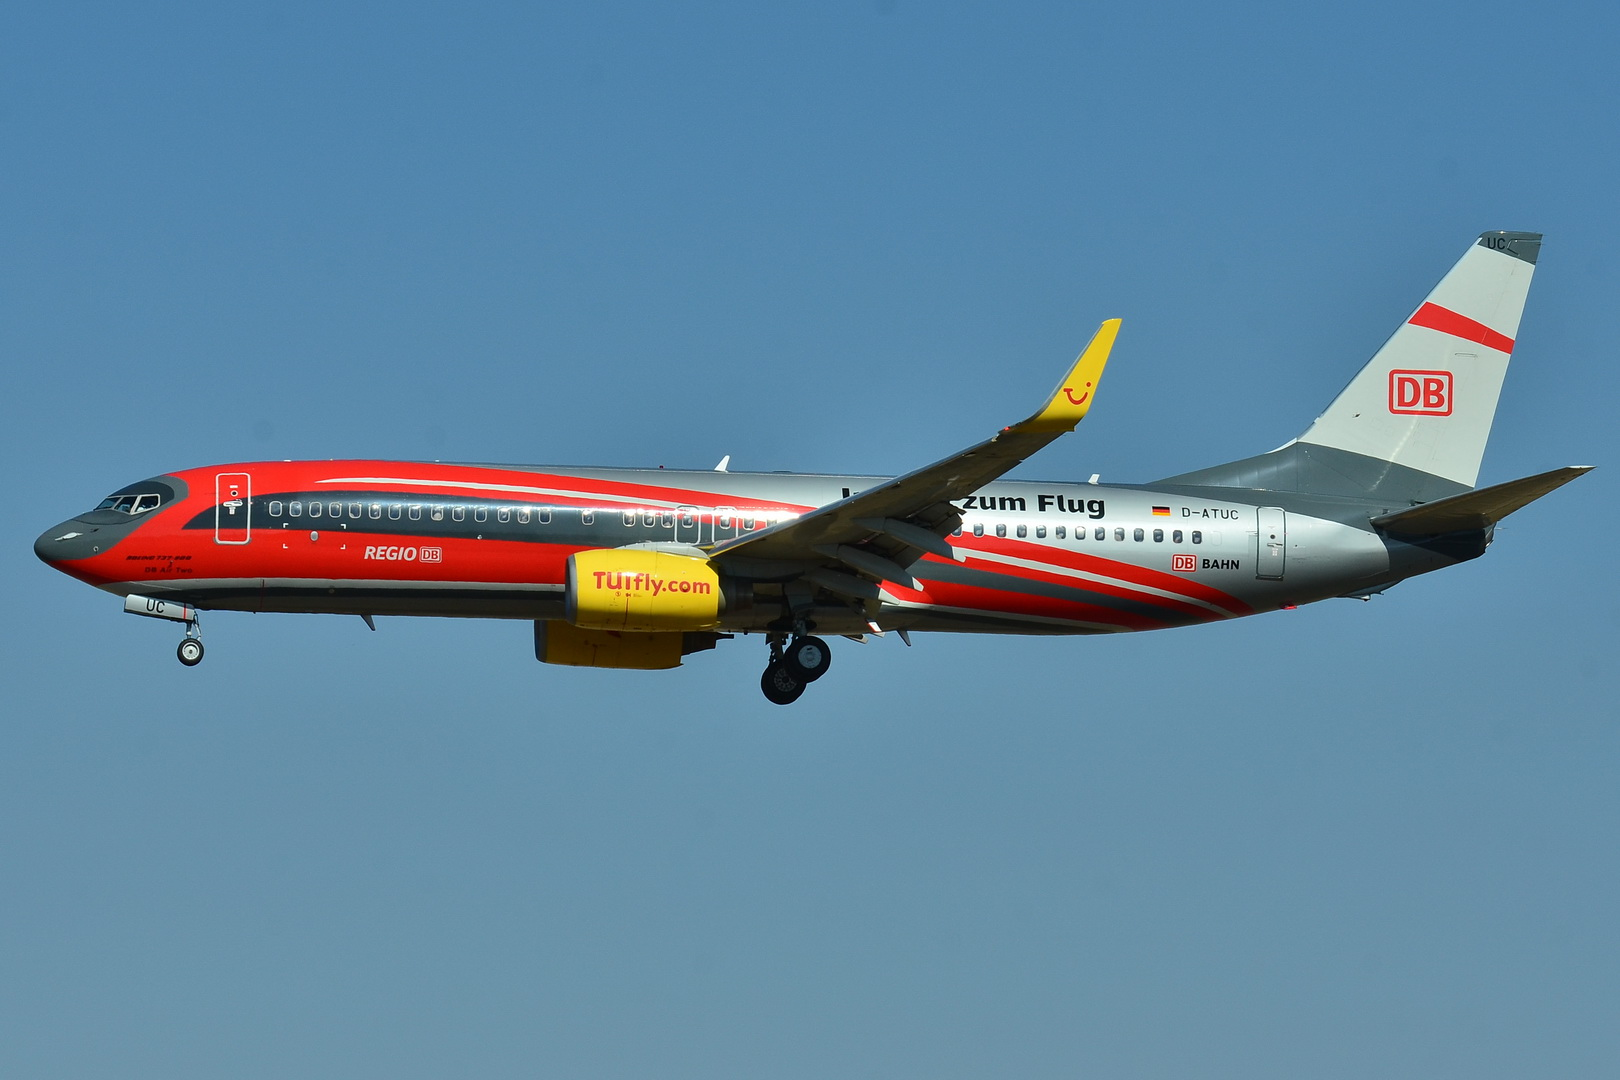 Datei:Boeing 737-800 TUIfly D-ATUC (DB Air Two livery) (HLX - HLF ...